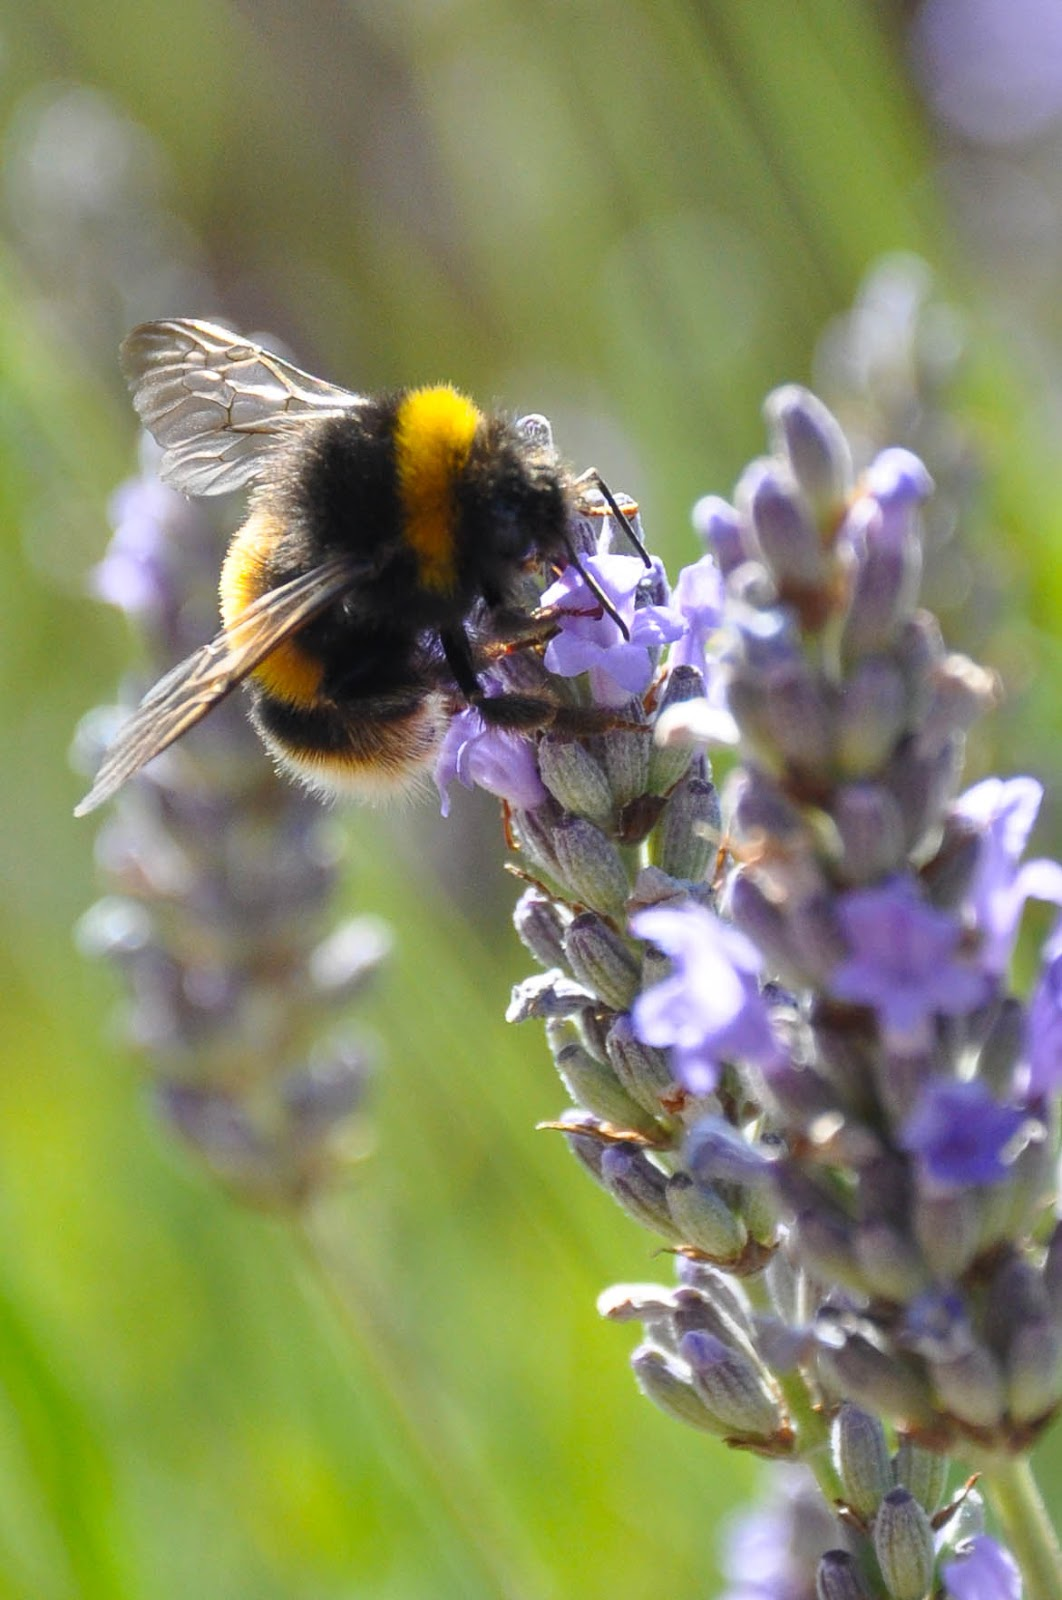 Bee on a lavender sprig, Carisbrook Castle, Isle of Wight, UK - www.rossiwrites.com